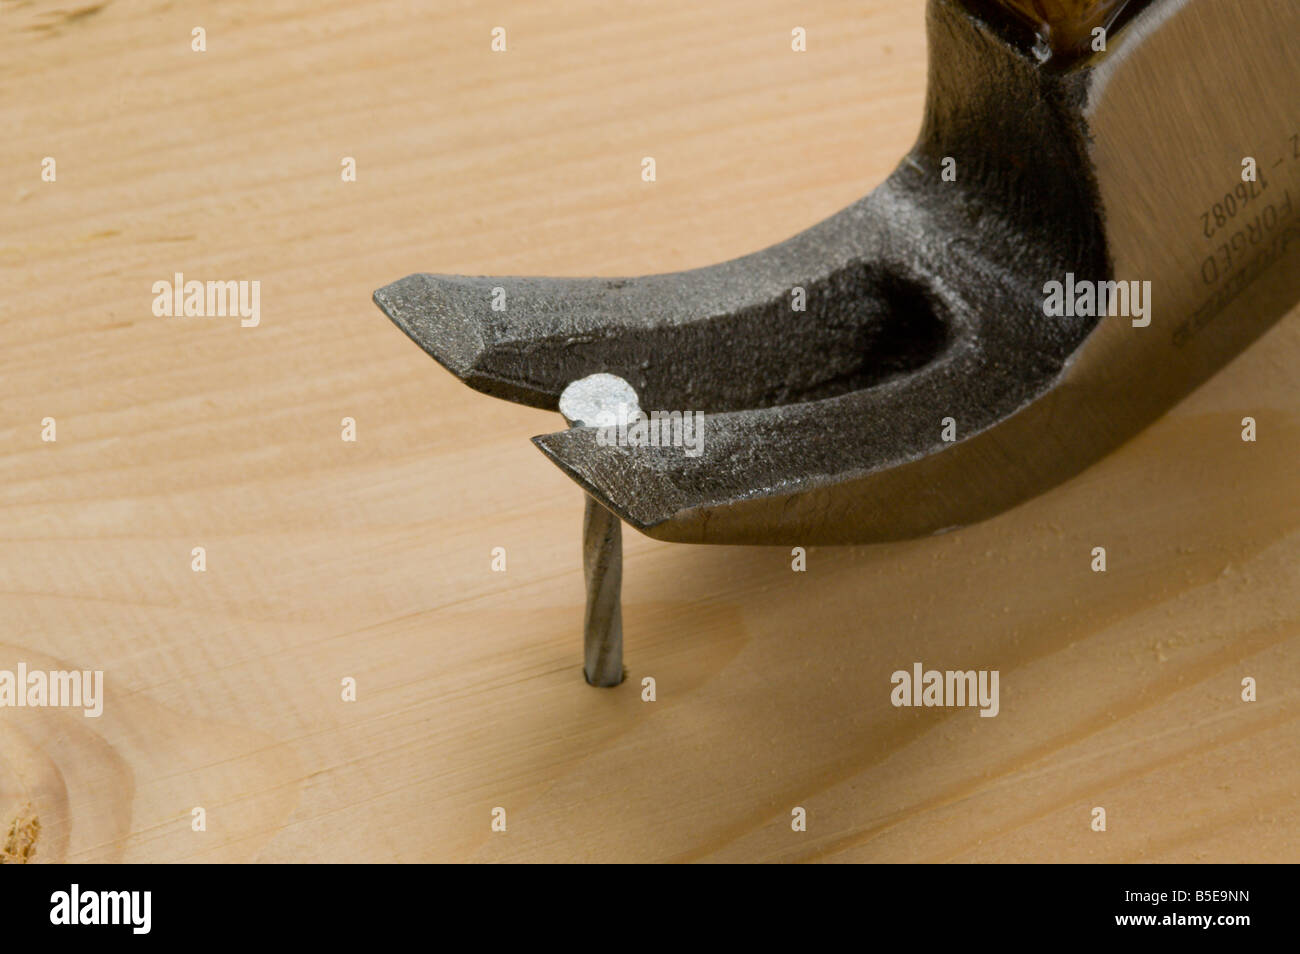 Claw hammer pulling nail out of wood - Stock Image